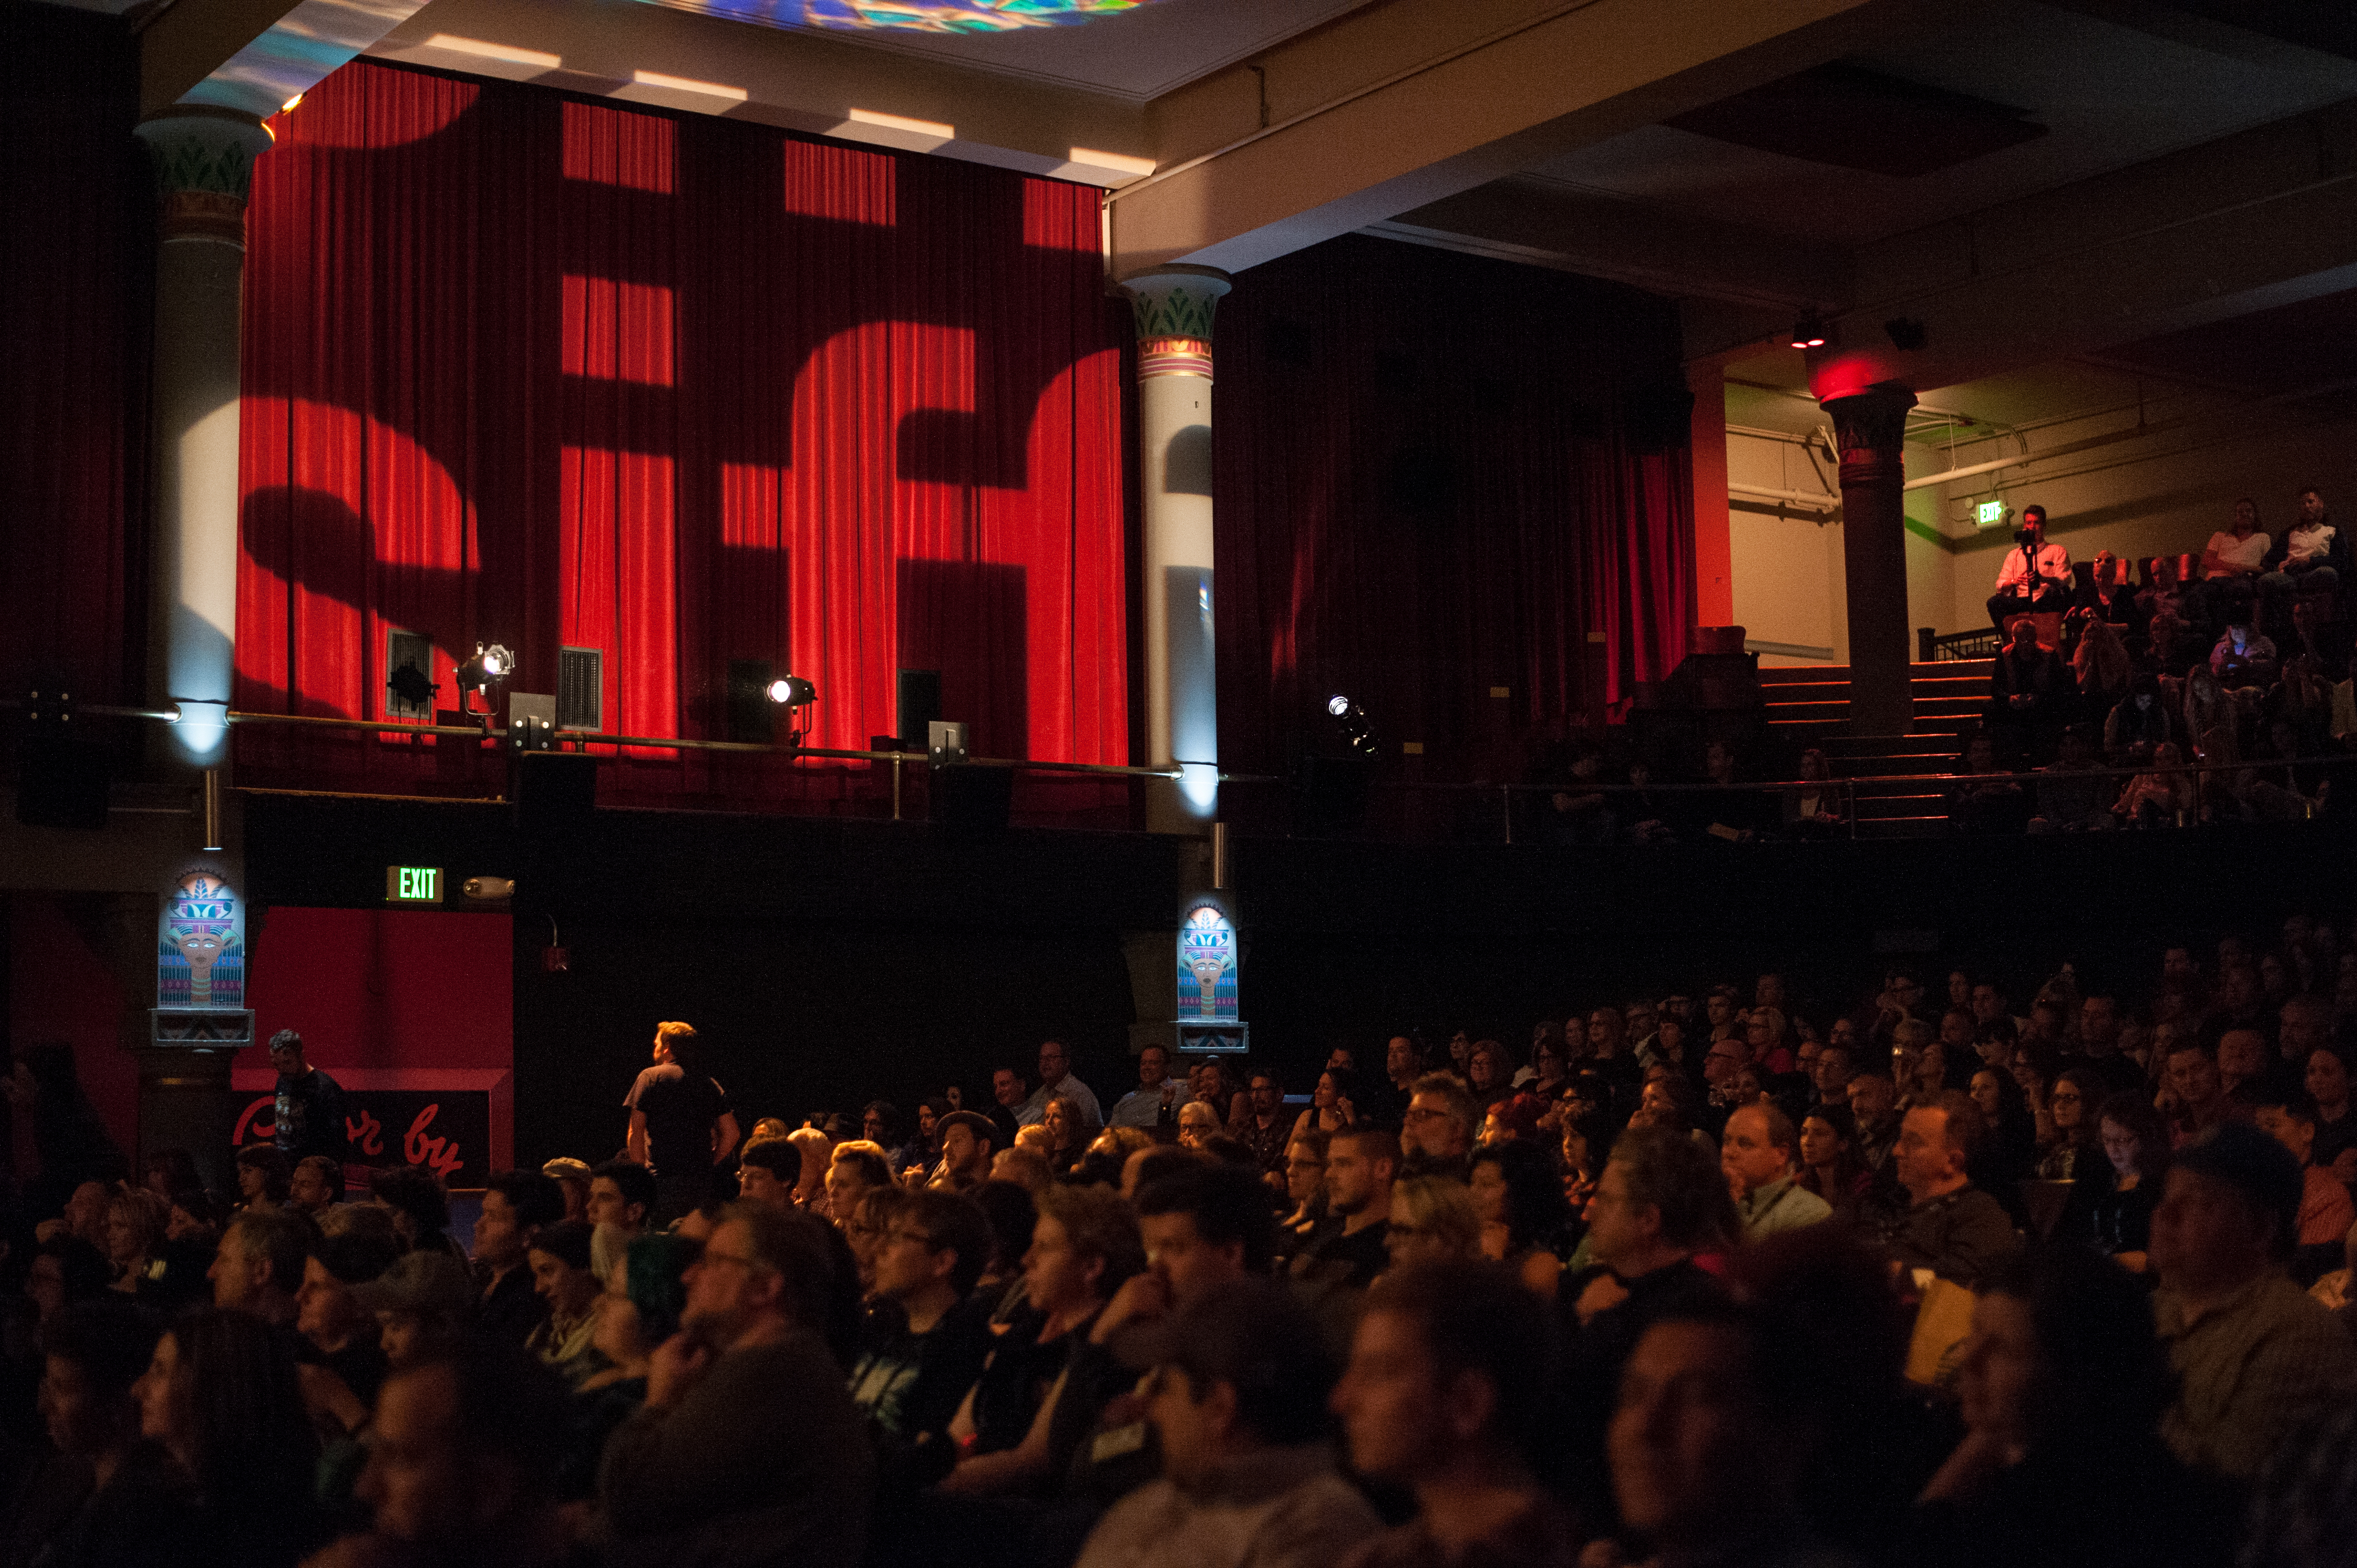 It's the most wonderful one and a half months of the year: SIFF IS BACK, PEOPLE! Celebrating its 45th year, the Seattle International Film Festival (May 16 - June 9), can be overwhelming. With more than 400 films from almost 90 countries screened over 25 days, you can't possibly be expected to IMDb every single one of them. That's where we come in. Here is a breakdown of the best 13 films you should absolutely catch at SIFF this year. Happy festival'ing! (Image: SIFF)